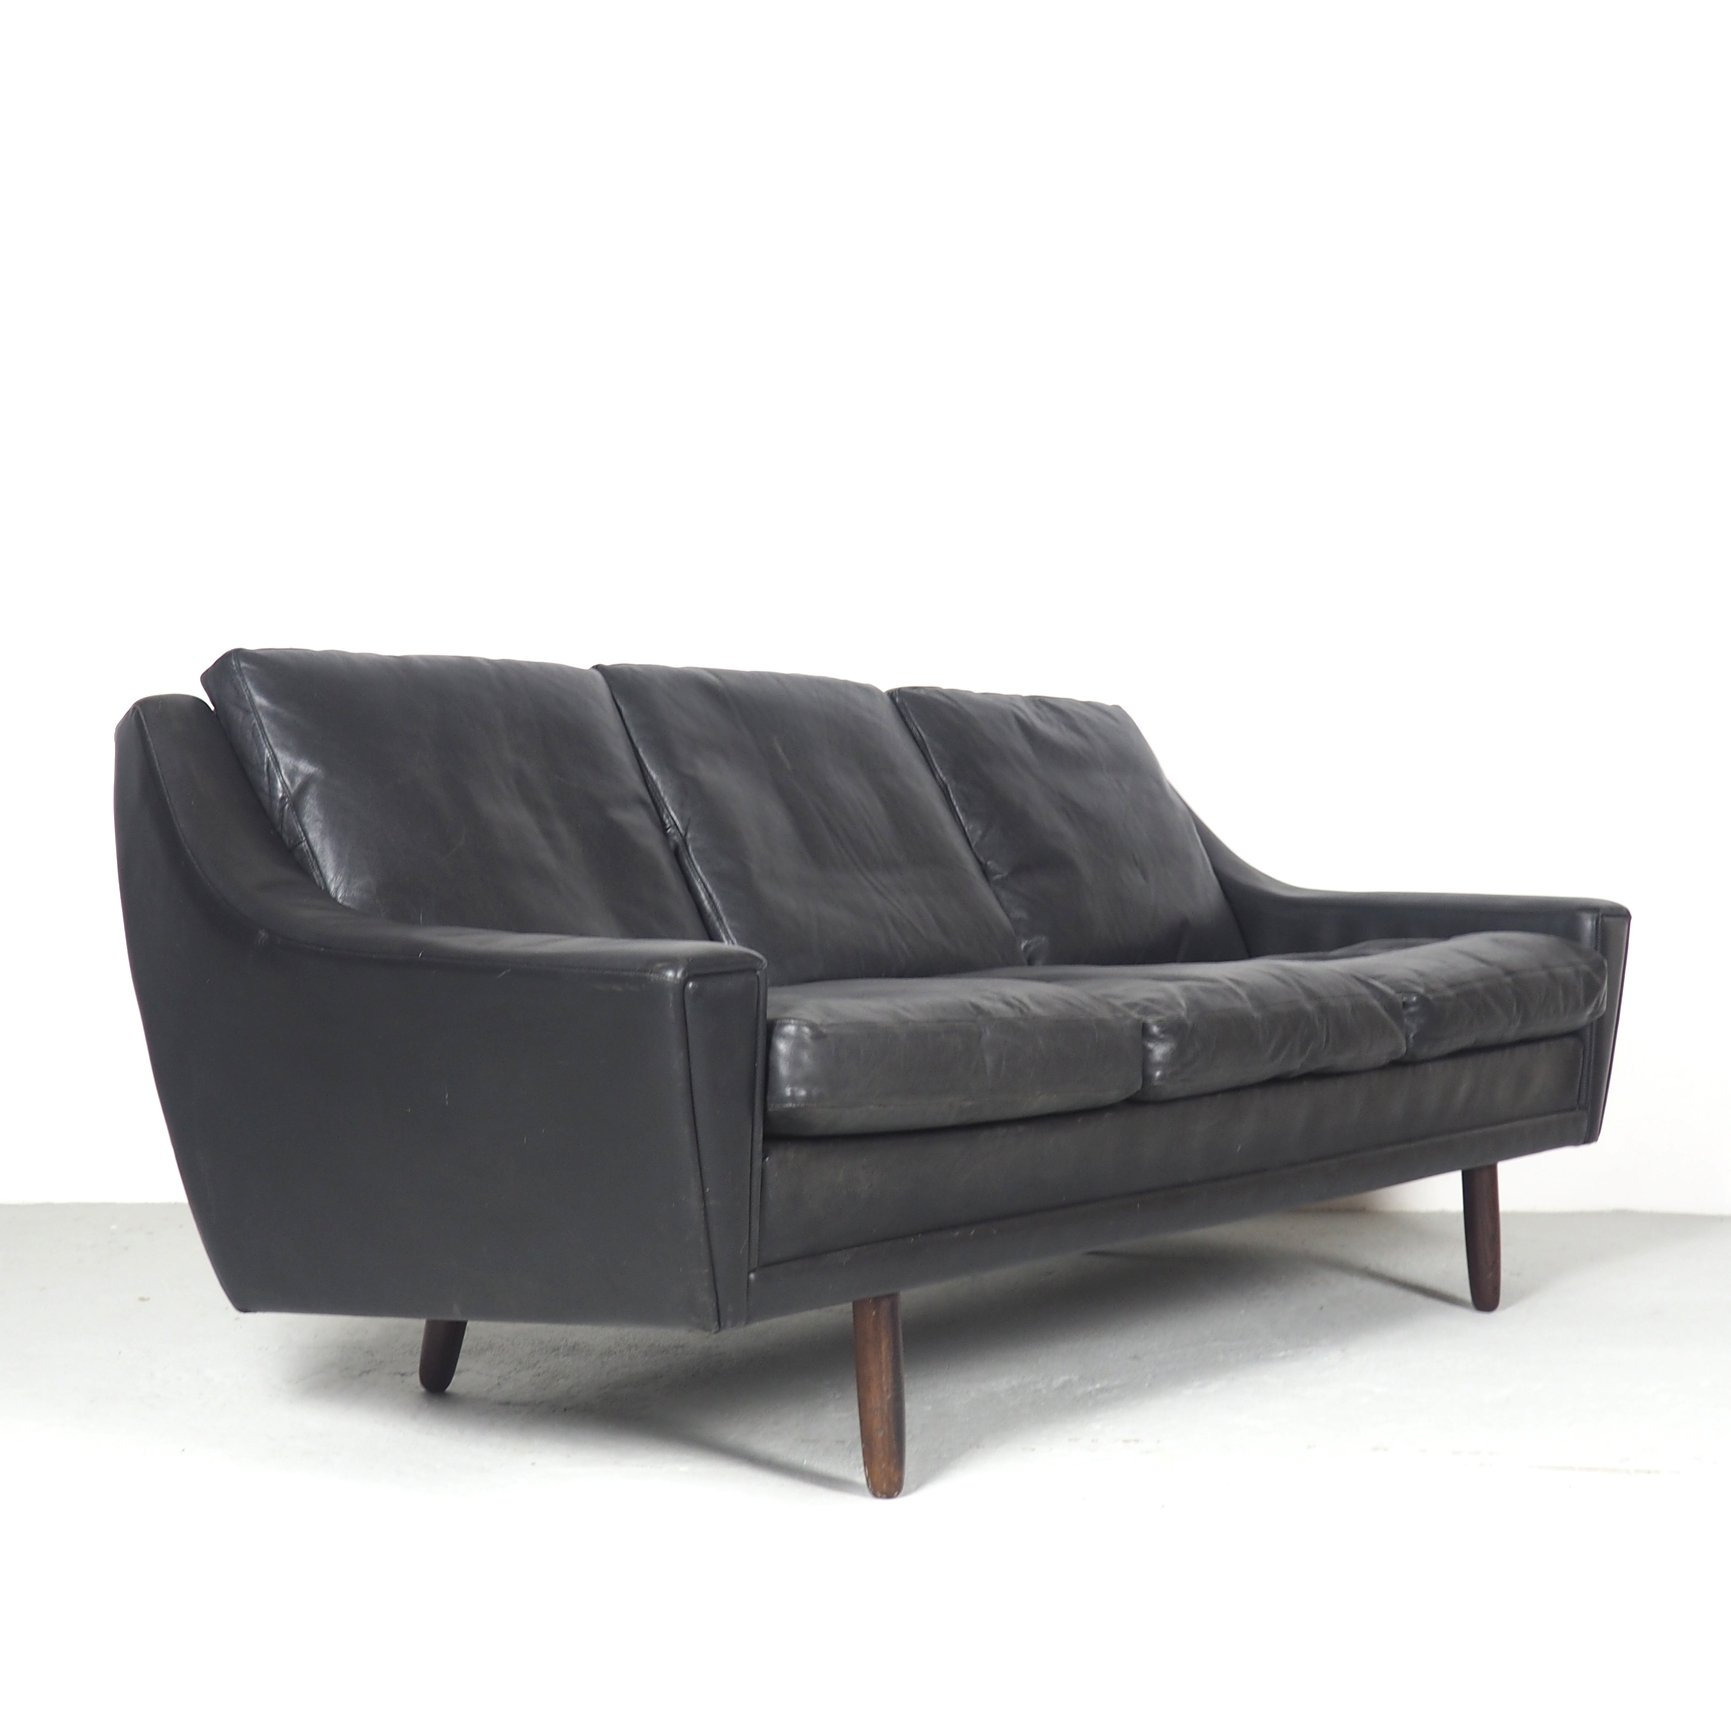 Danish Design 3 Seater Sofa In Black Leather 1960 S 91500